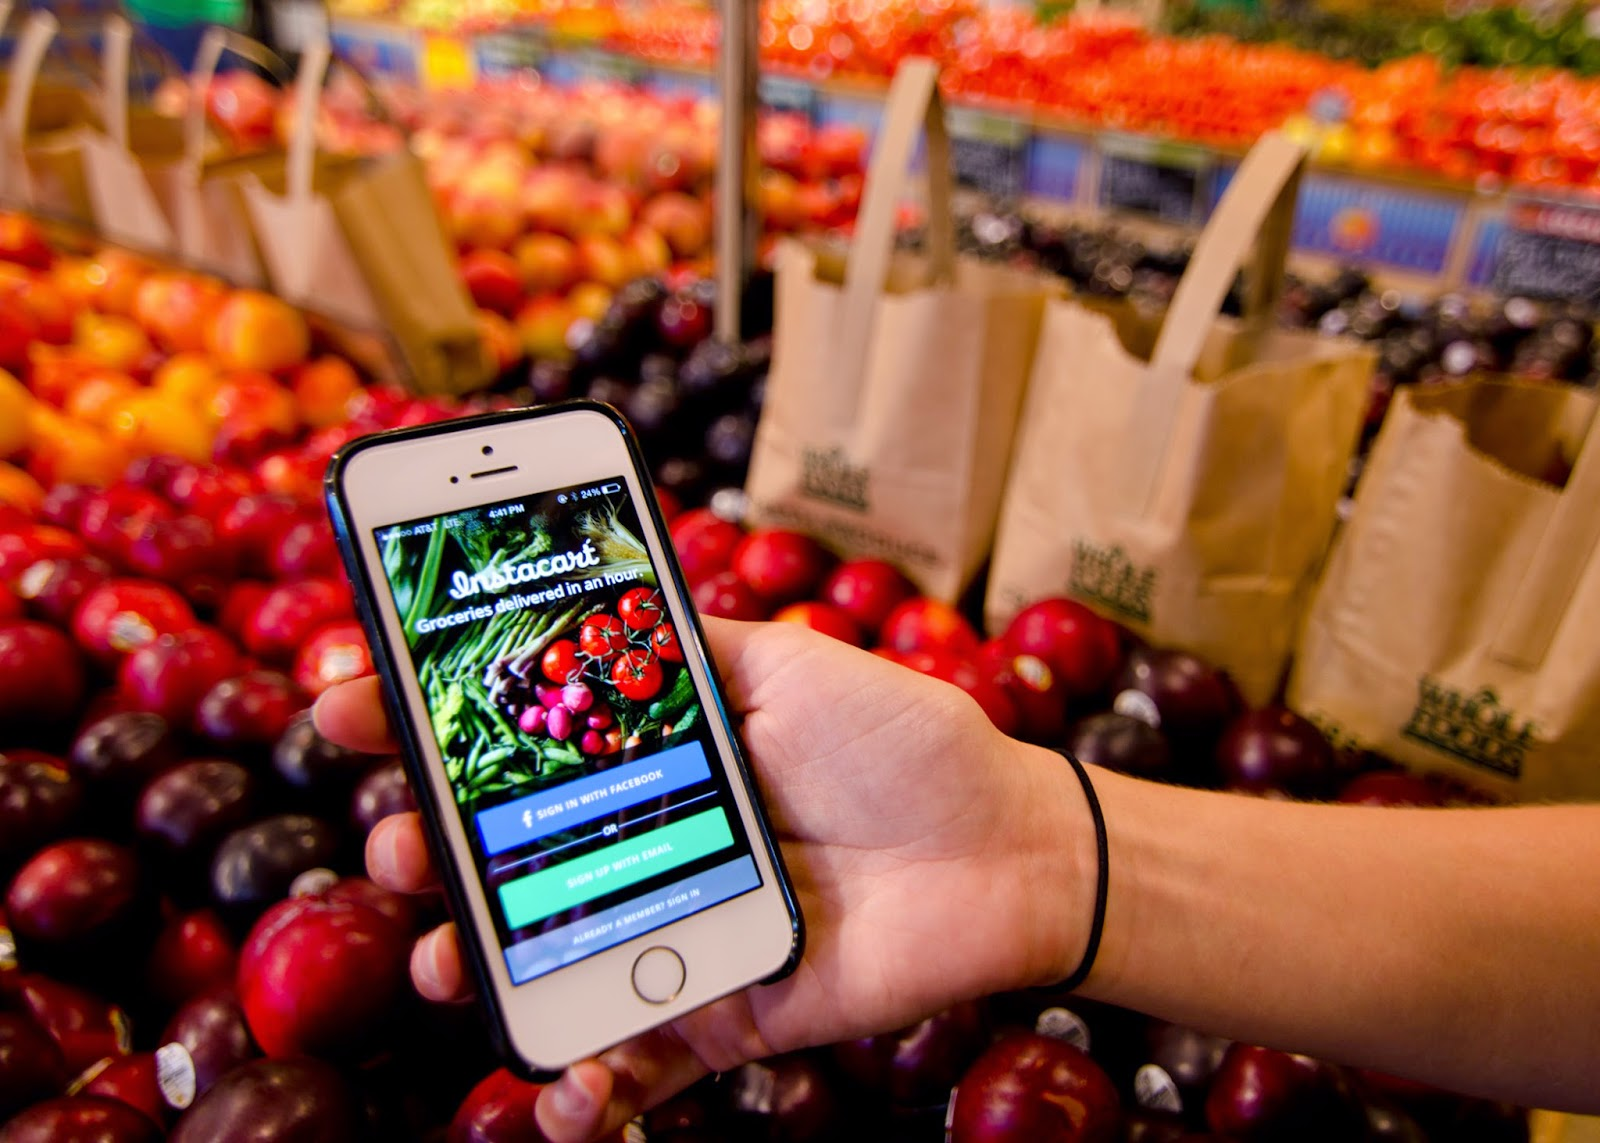 On demand grocery courier instacart acqui hires wedding party app team on demand grocery courier instacart acqui hires wedding party app team junglespirit Image collections